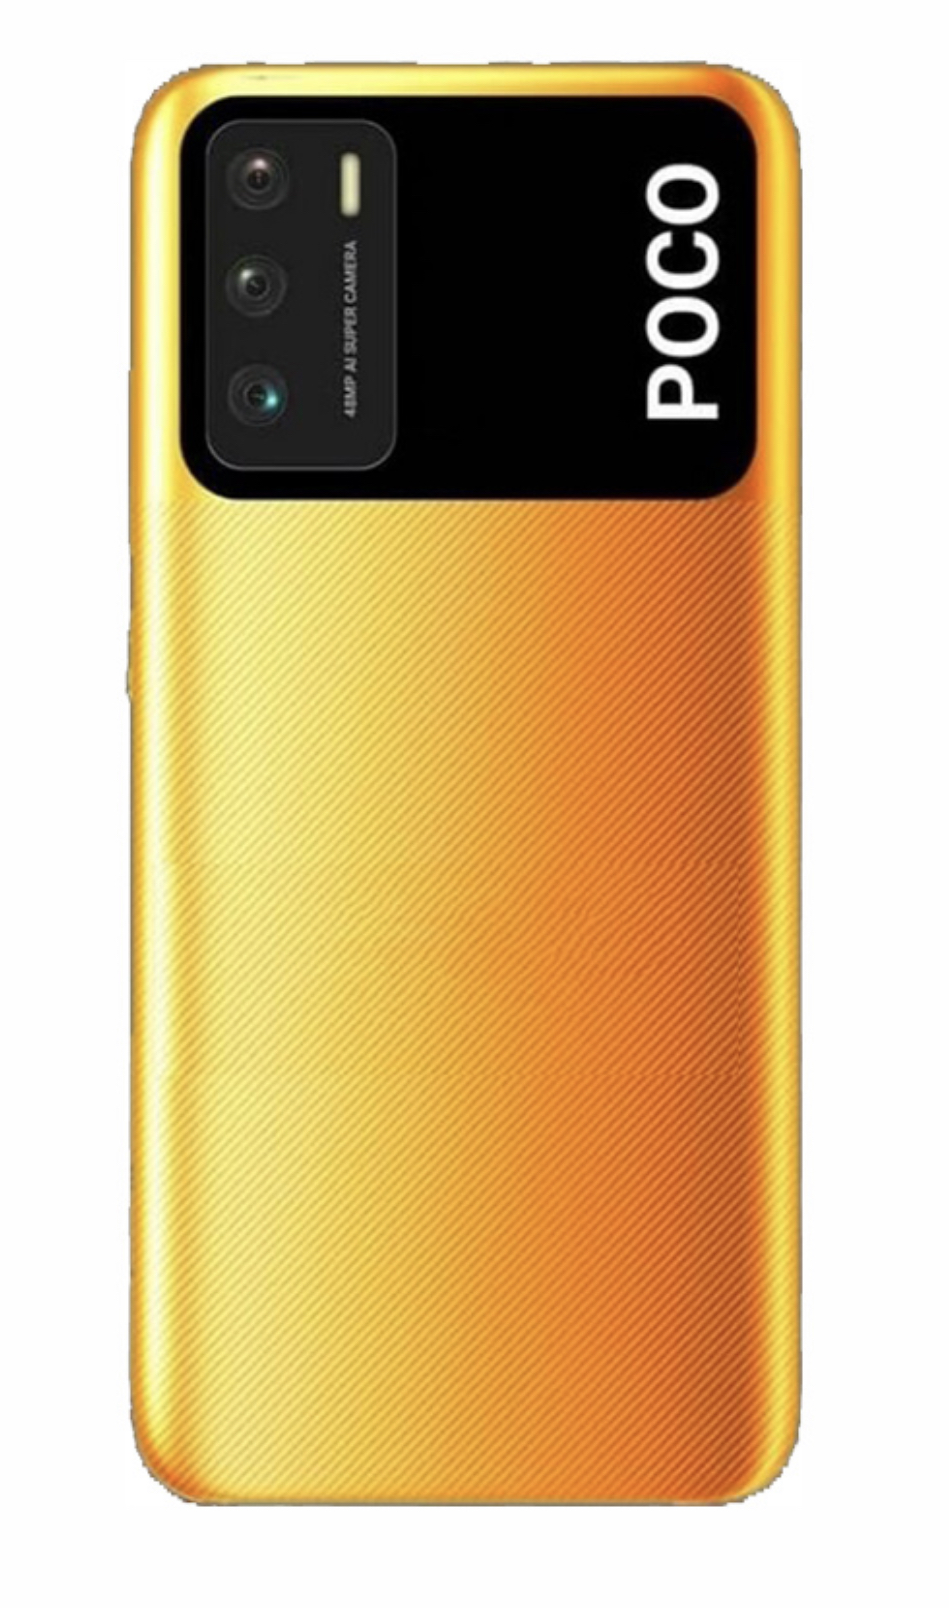 Xiaomi Poco M3 128GB Price in Pakistan and Specifications